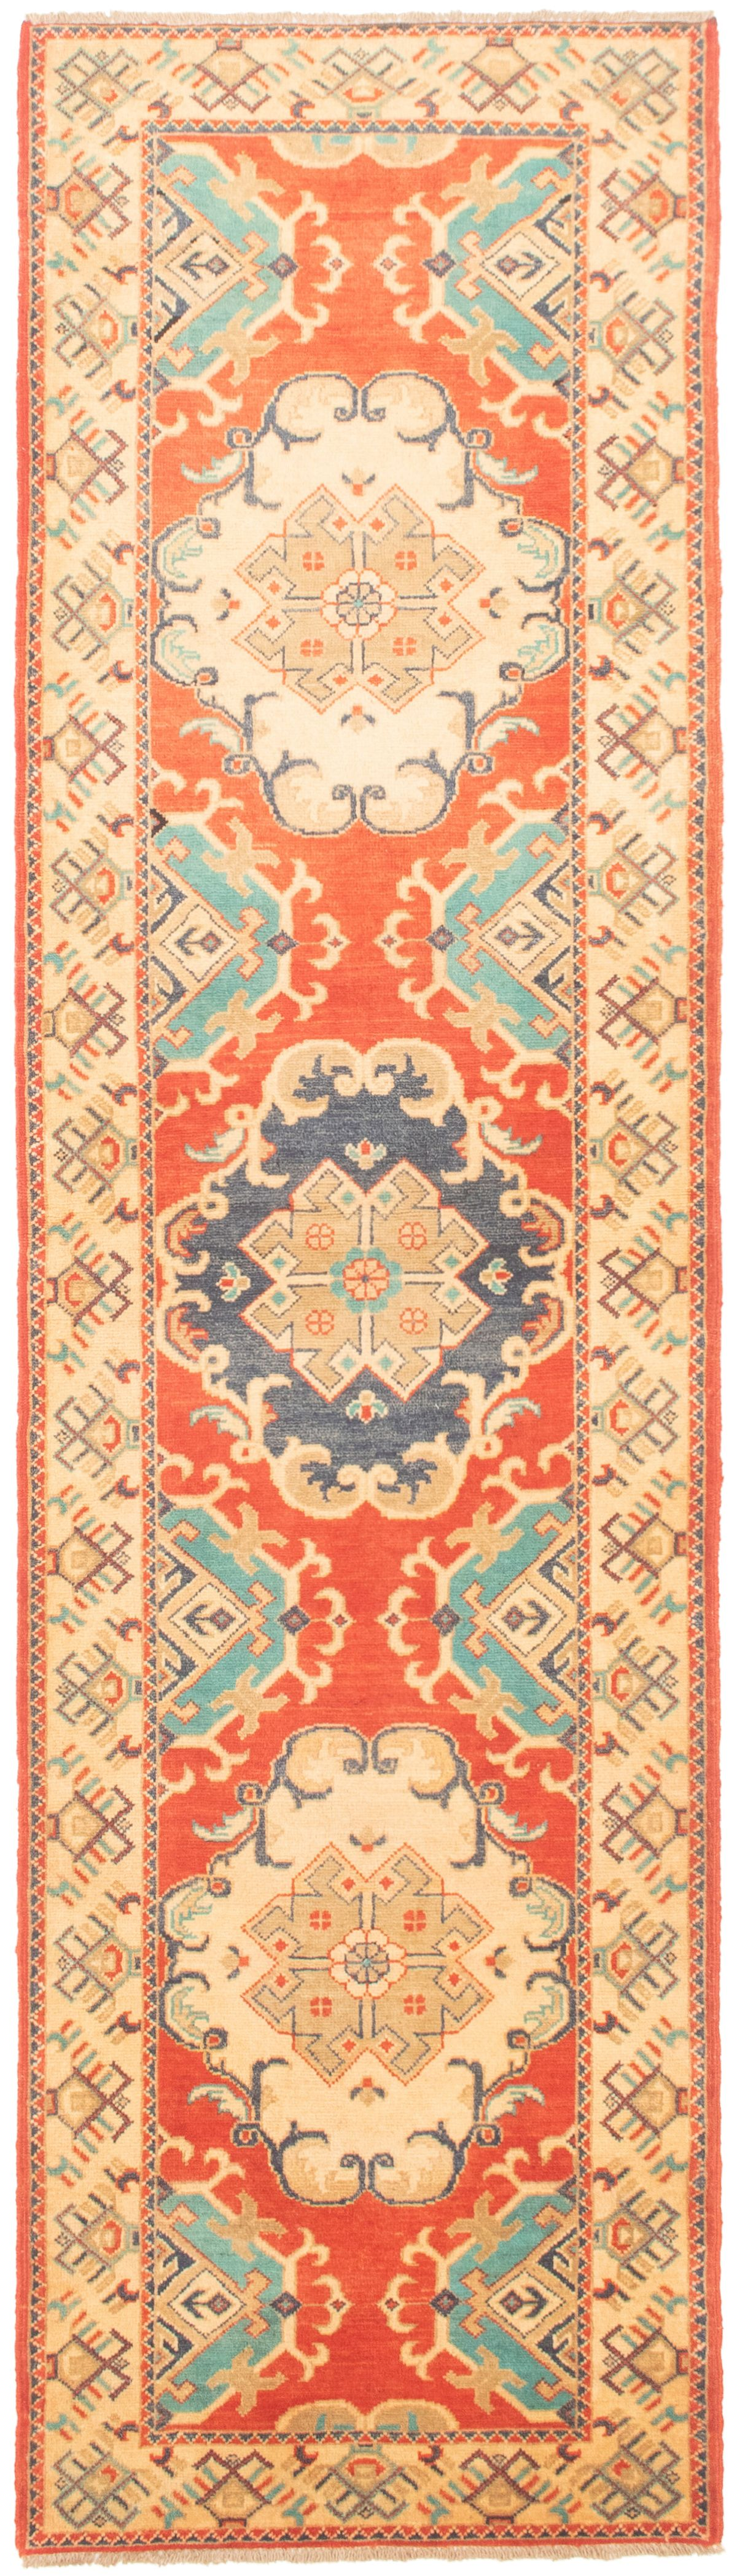 """Hand-knotted Finest Gazni Red Wool Rug 2'8"""" x 9'9""""  Size: 2'8"""" x 9'9"""""""